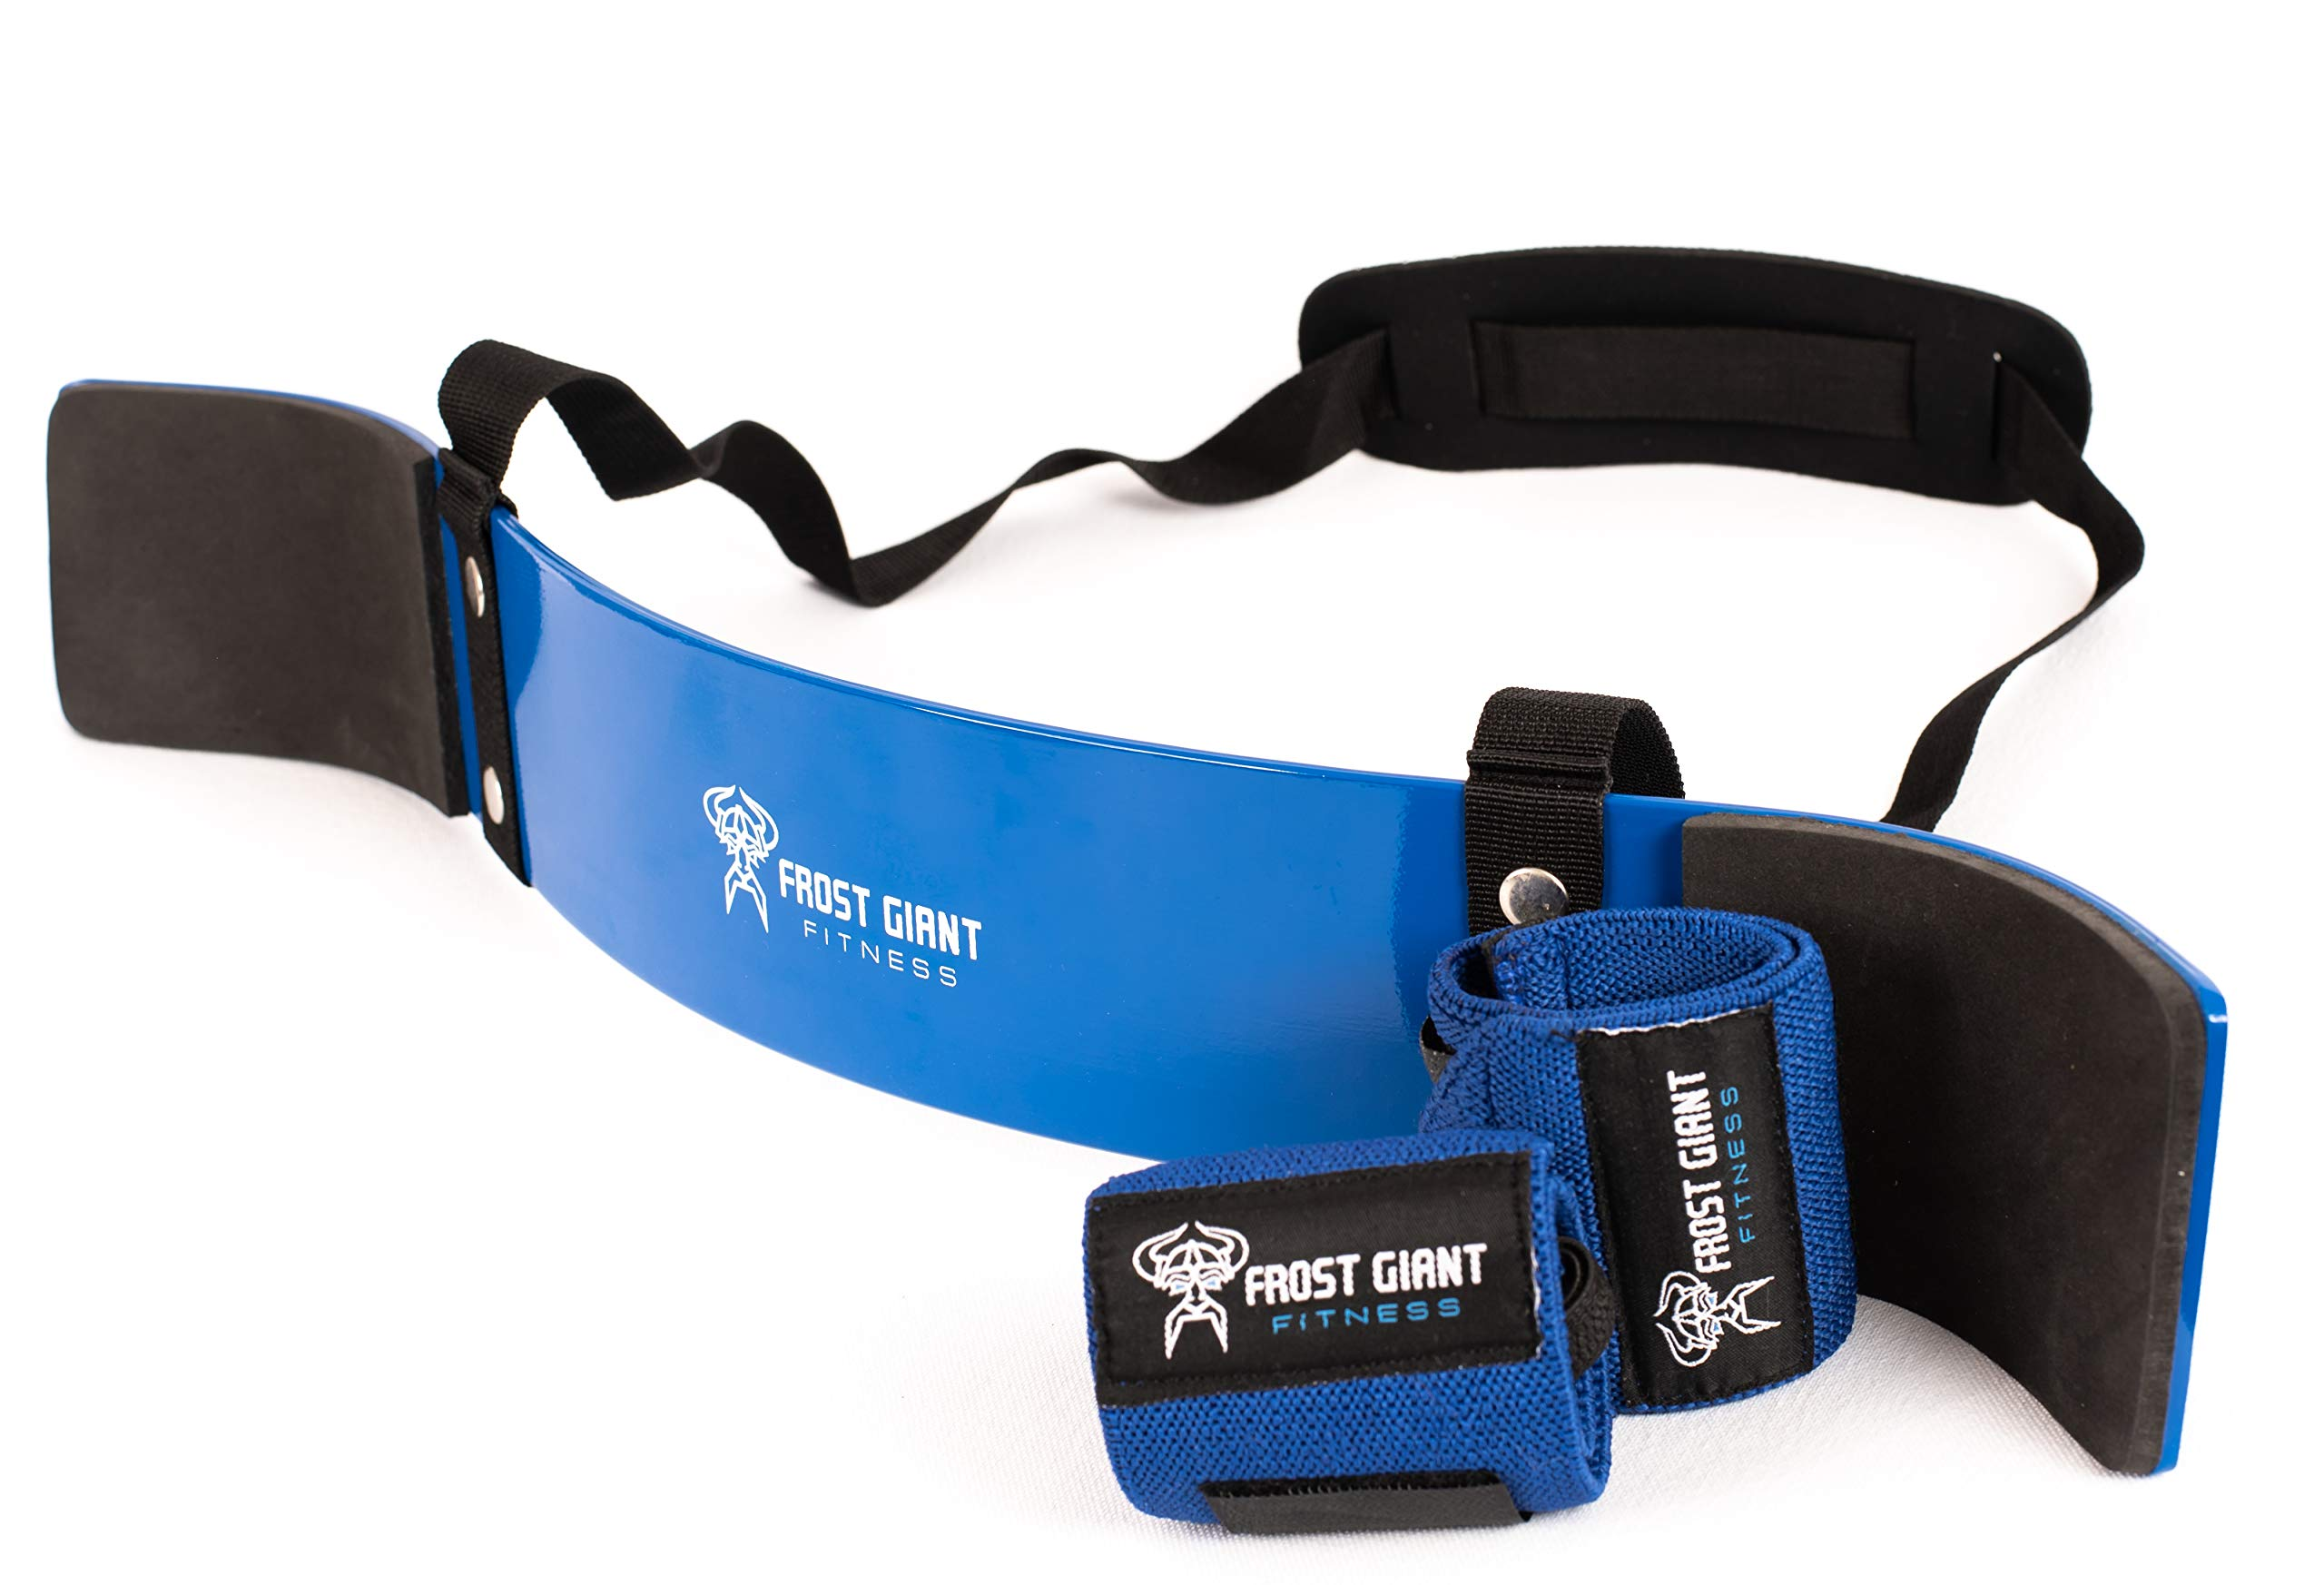 Frost Giant Fitness Heavy Duty Arm Blaster Pro + Bonus Wrist Wraps Support | Isolate Muscles for Maximum Strength. Perfect Bicep Curl Support for Faster Results. Biceps, Tricep & Upper Body Workout